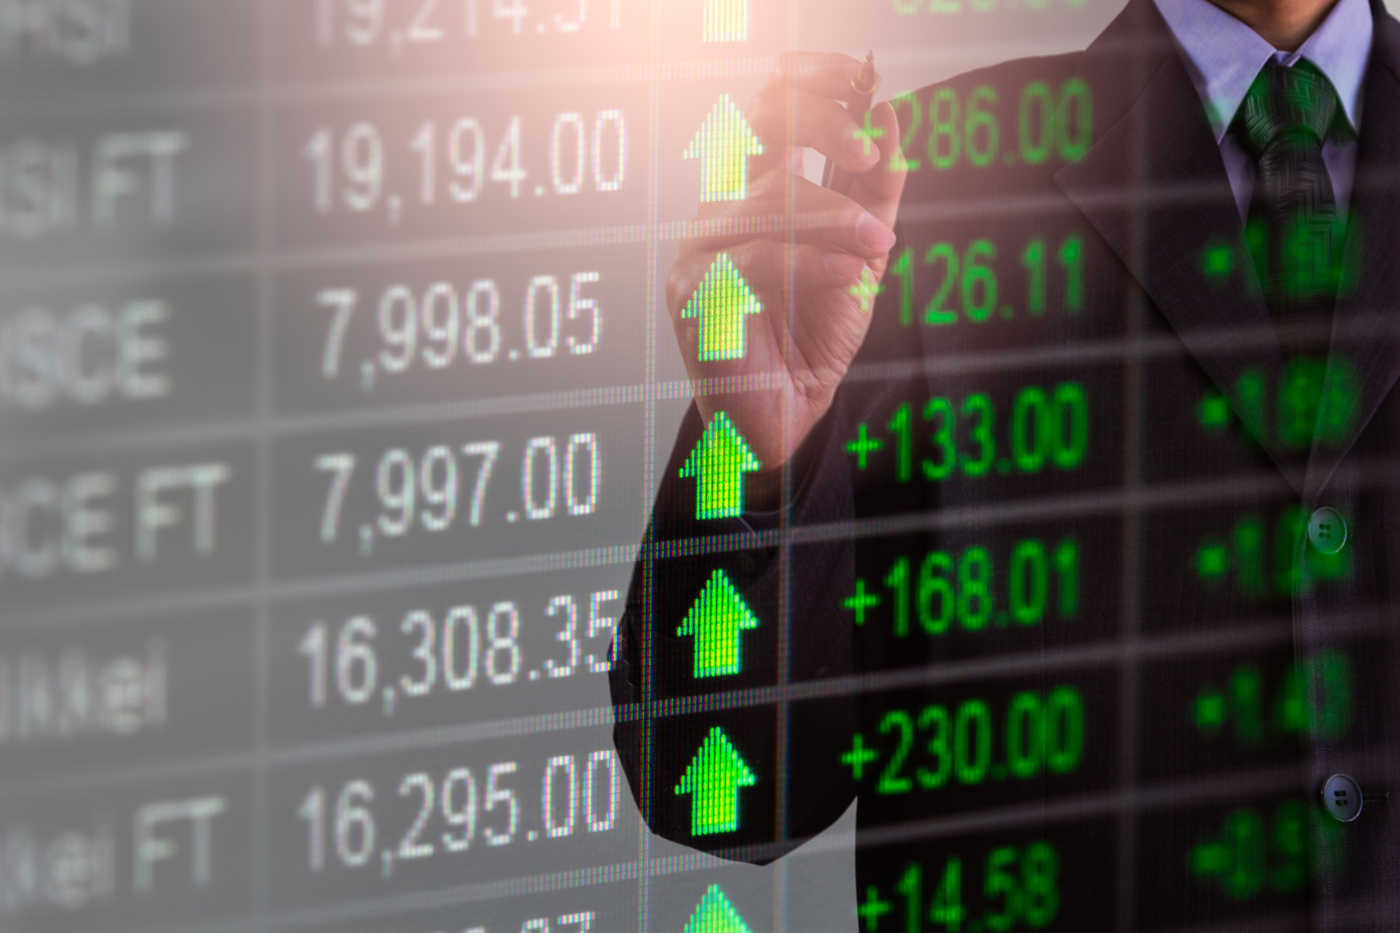 Stock tickers, stock prices, stock market, investing, trading